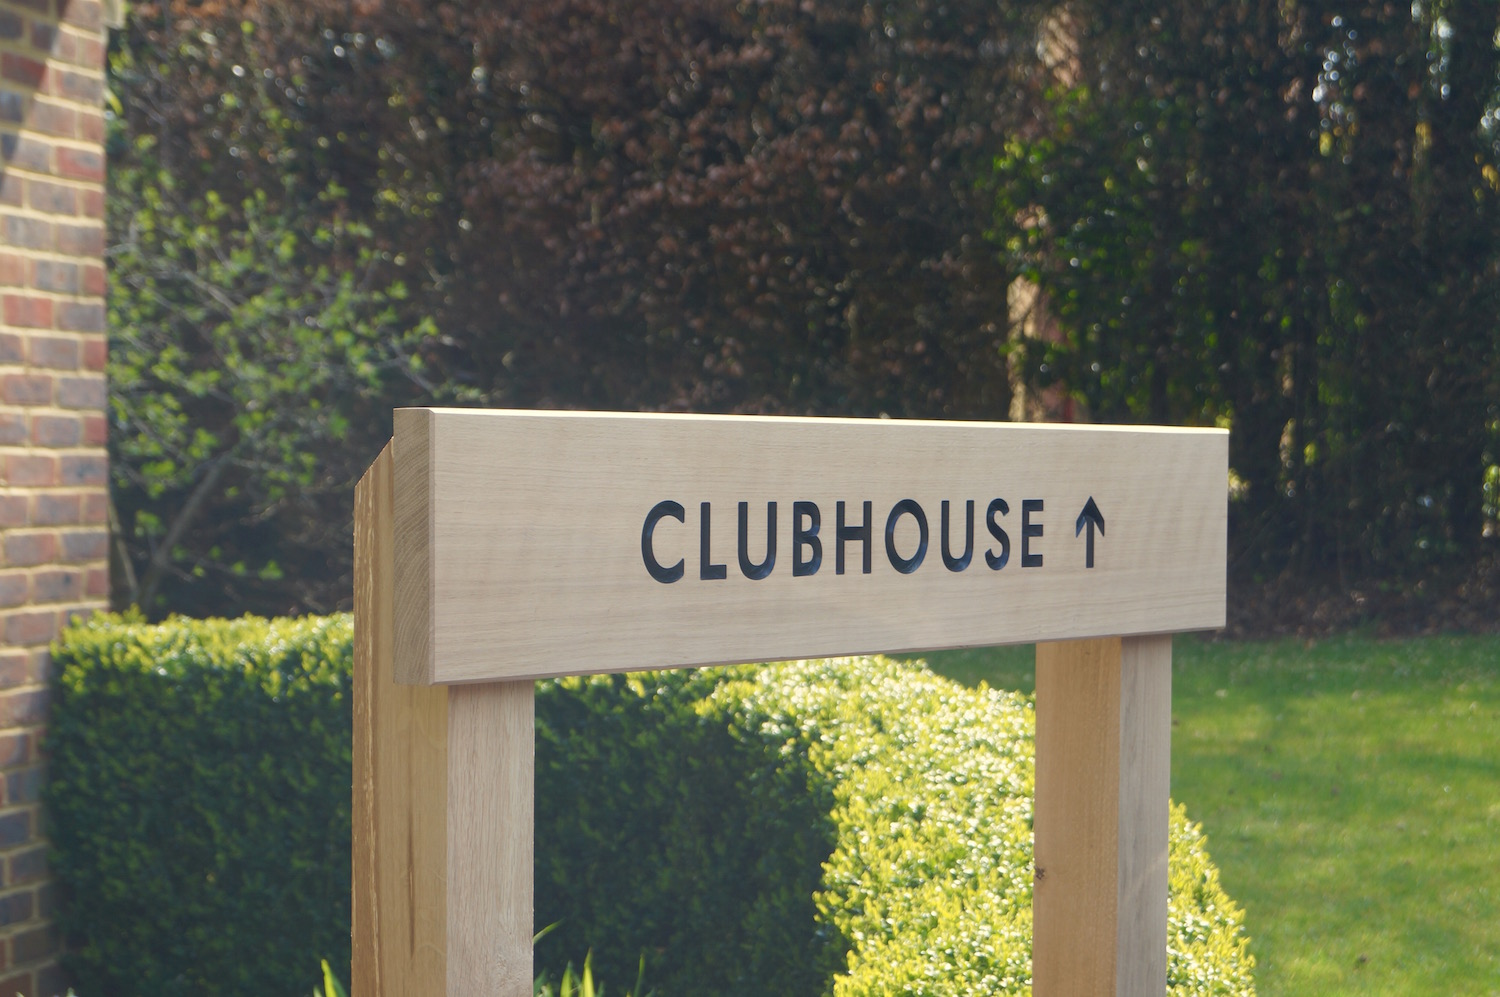 clubhouse-engraved-oak-signs-makemesomethingspecial.com